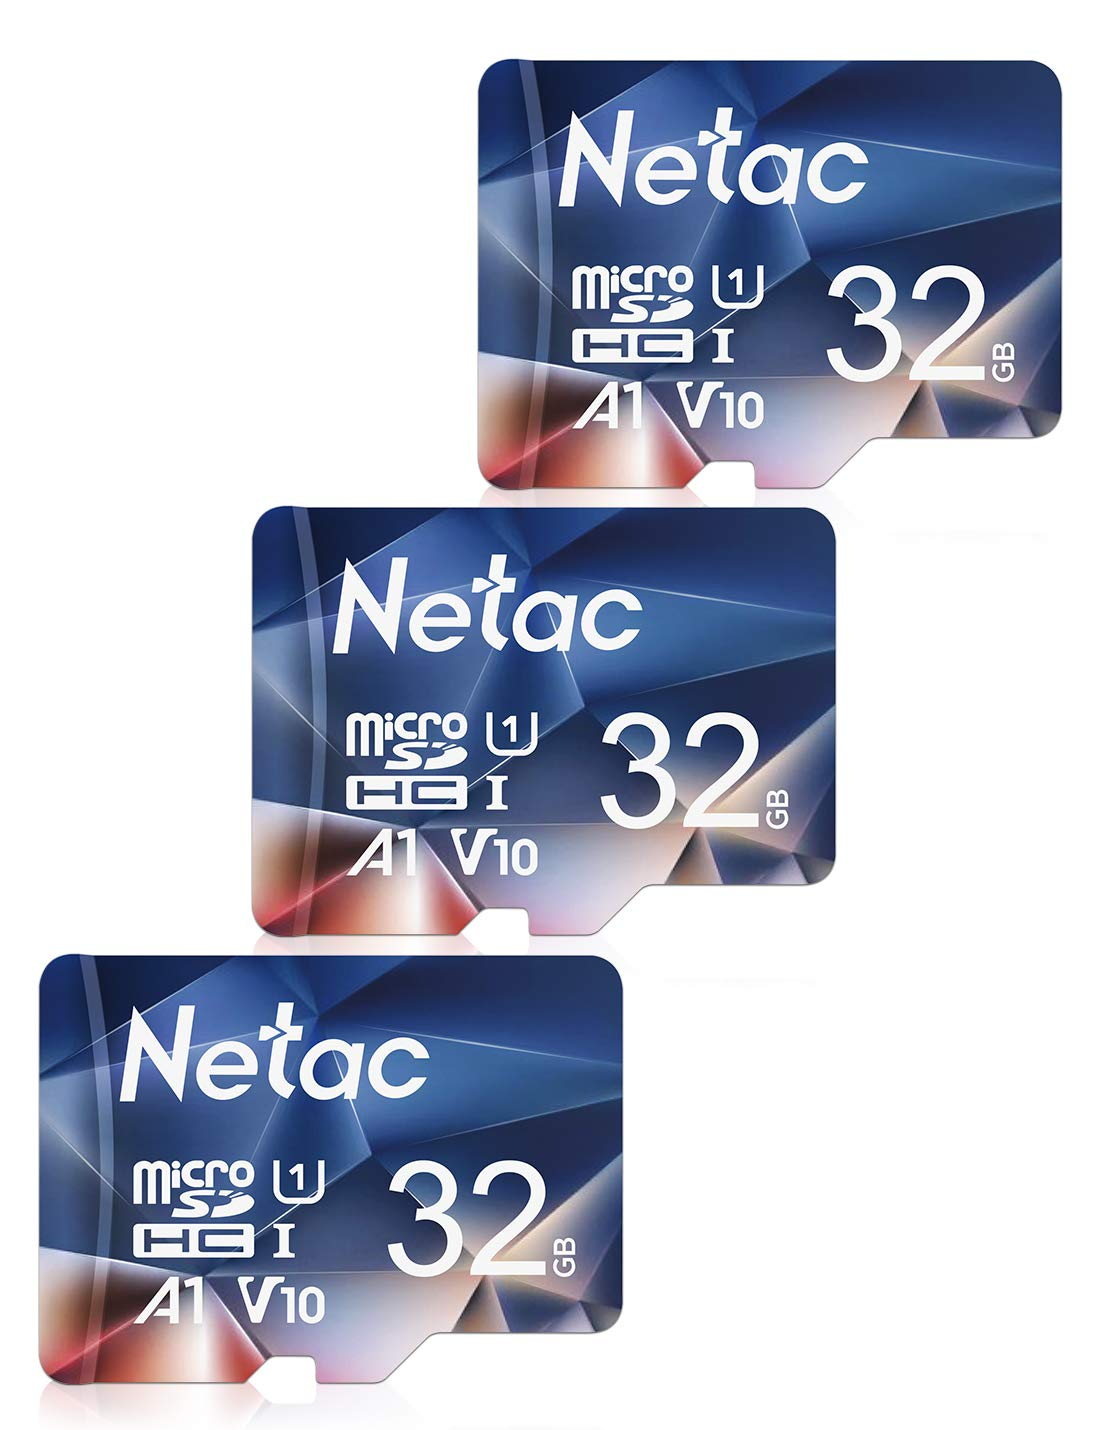 Netac 32GB Micro SD Memory Card 3 PCs, MicroSDHC Card UHS-I, 90/10MB/s(R/W), 600X, C10, U1, A1, V10, Full HD, TF Card for Camera, Smartphone, Security System, Drone, Dash Cam, Gopro, Tablet